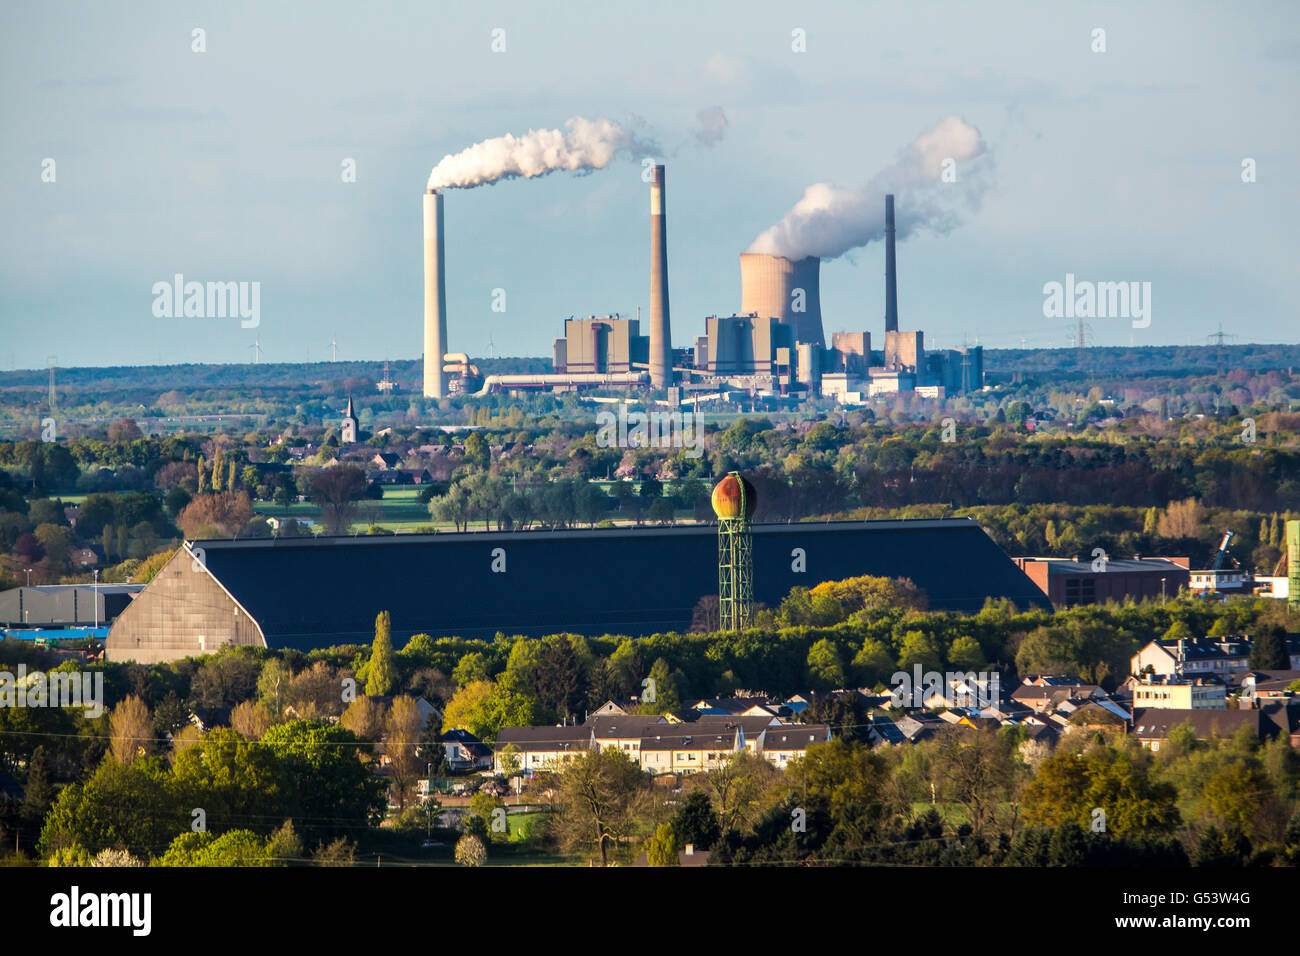 Coal power plant Dinslaken,  operated by  STEAG energy company, Germany - Stock Image